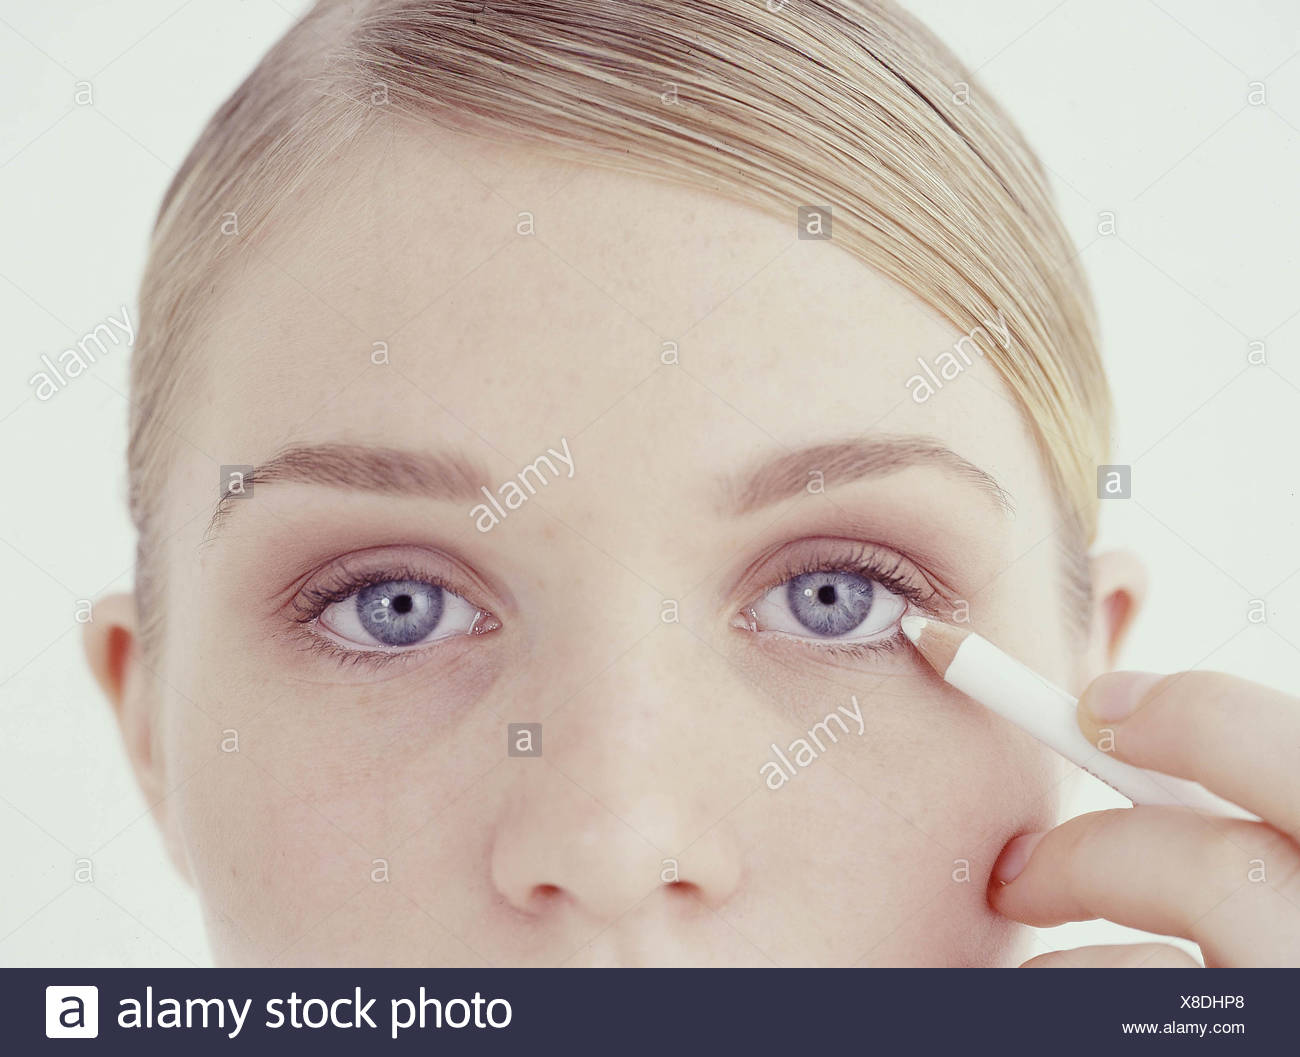 Incredible eyes Step by step to making small eyes look bigger Draw a